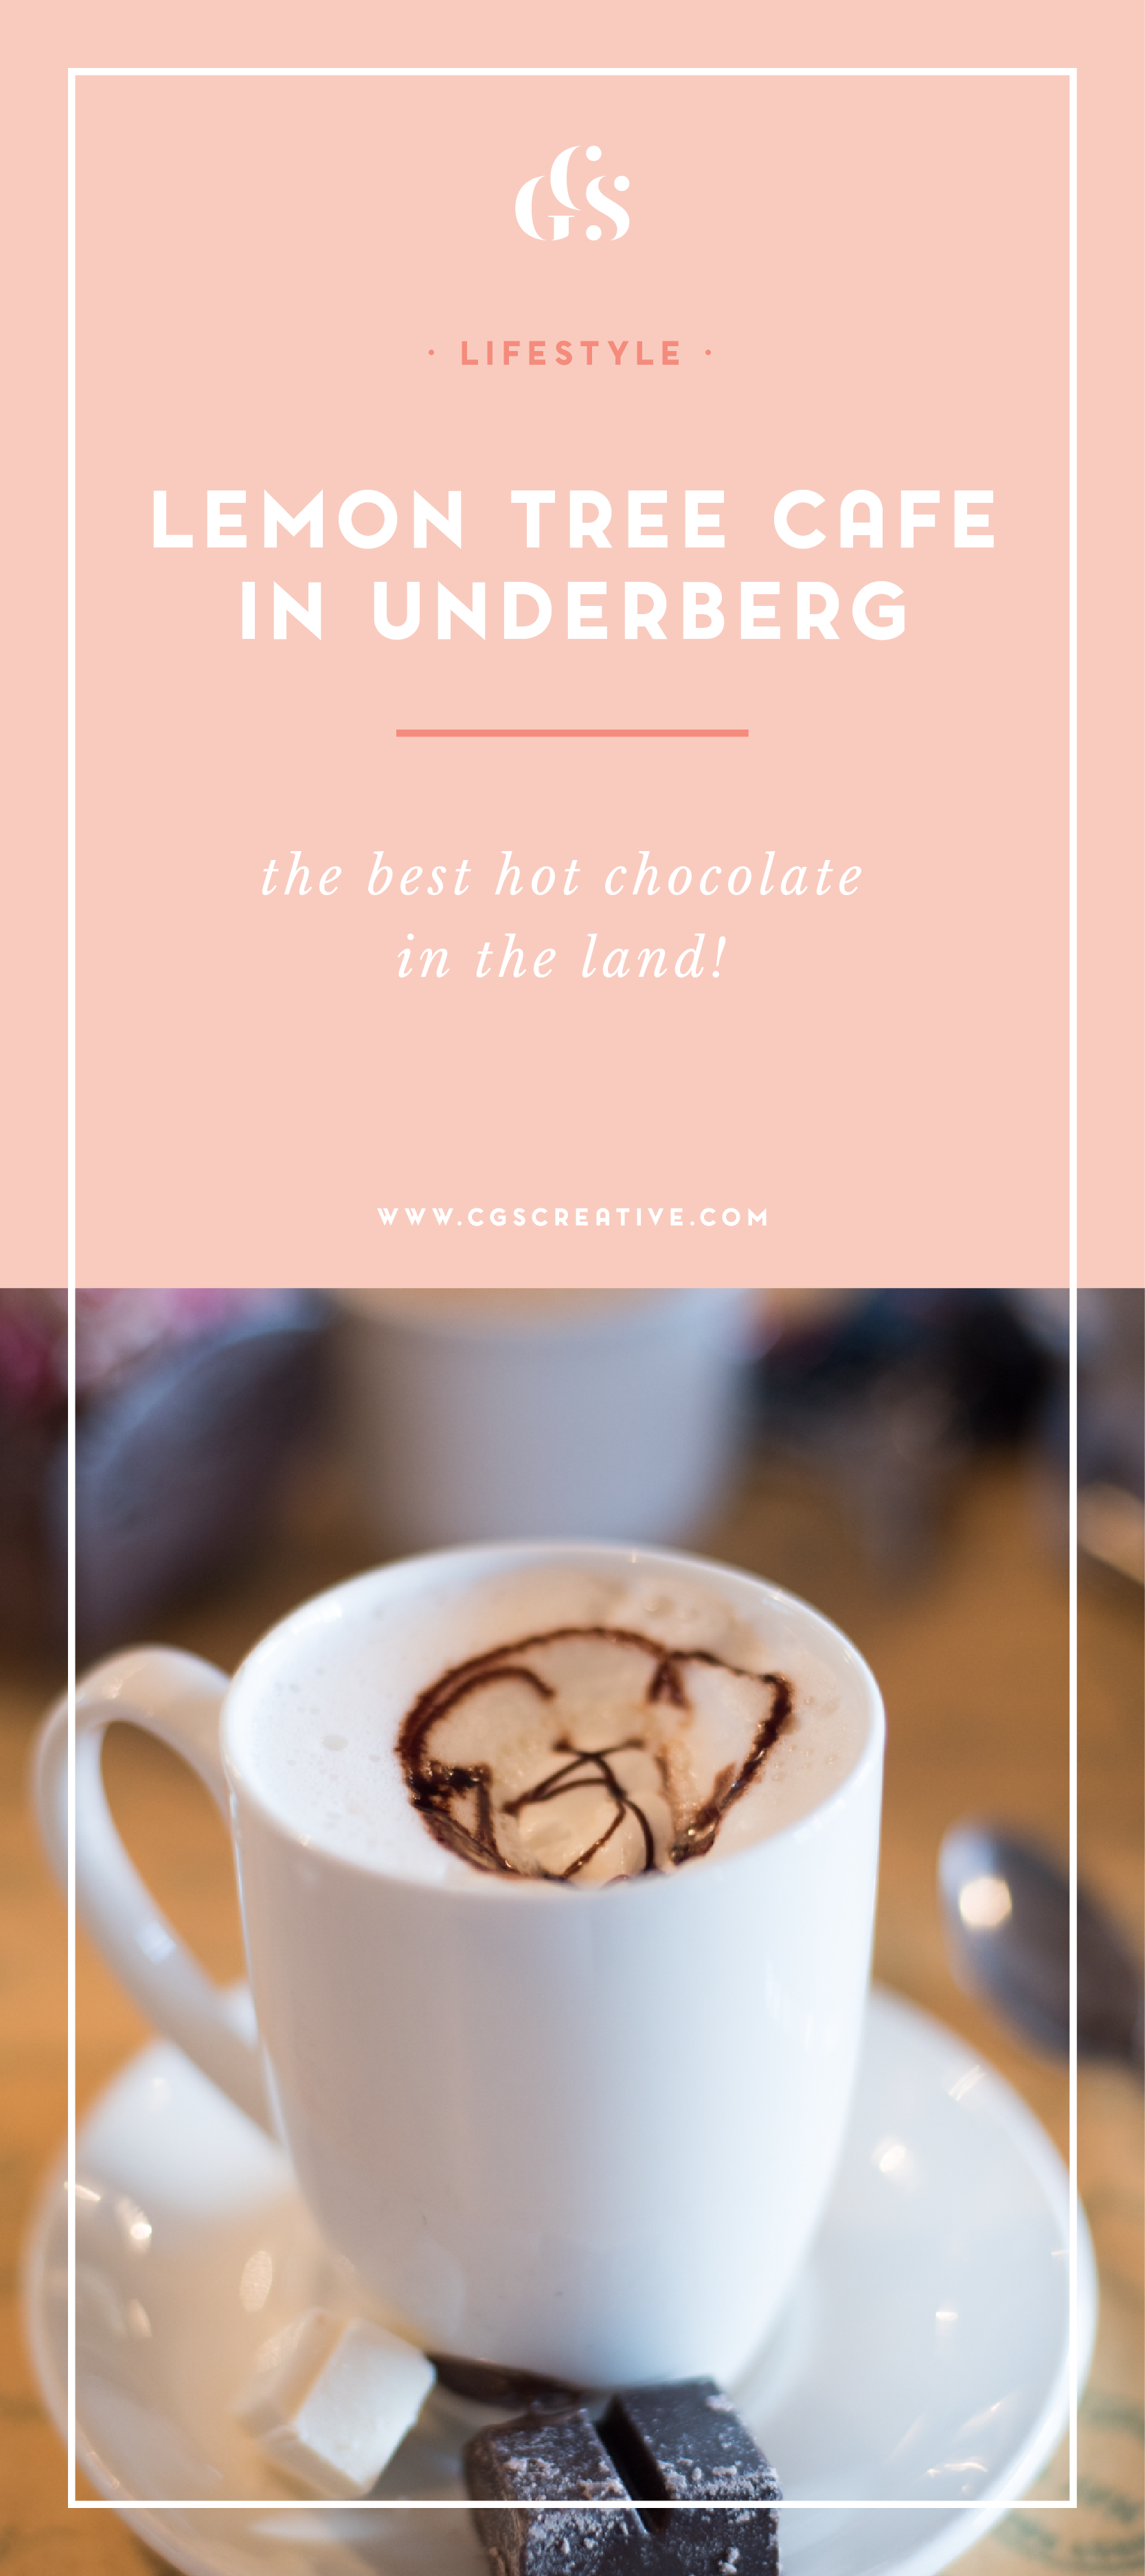 LemonTree Cafe Underberg Best Hot chocolate in south africa_Artboard 3.png